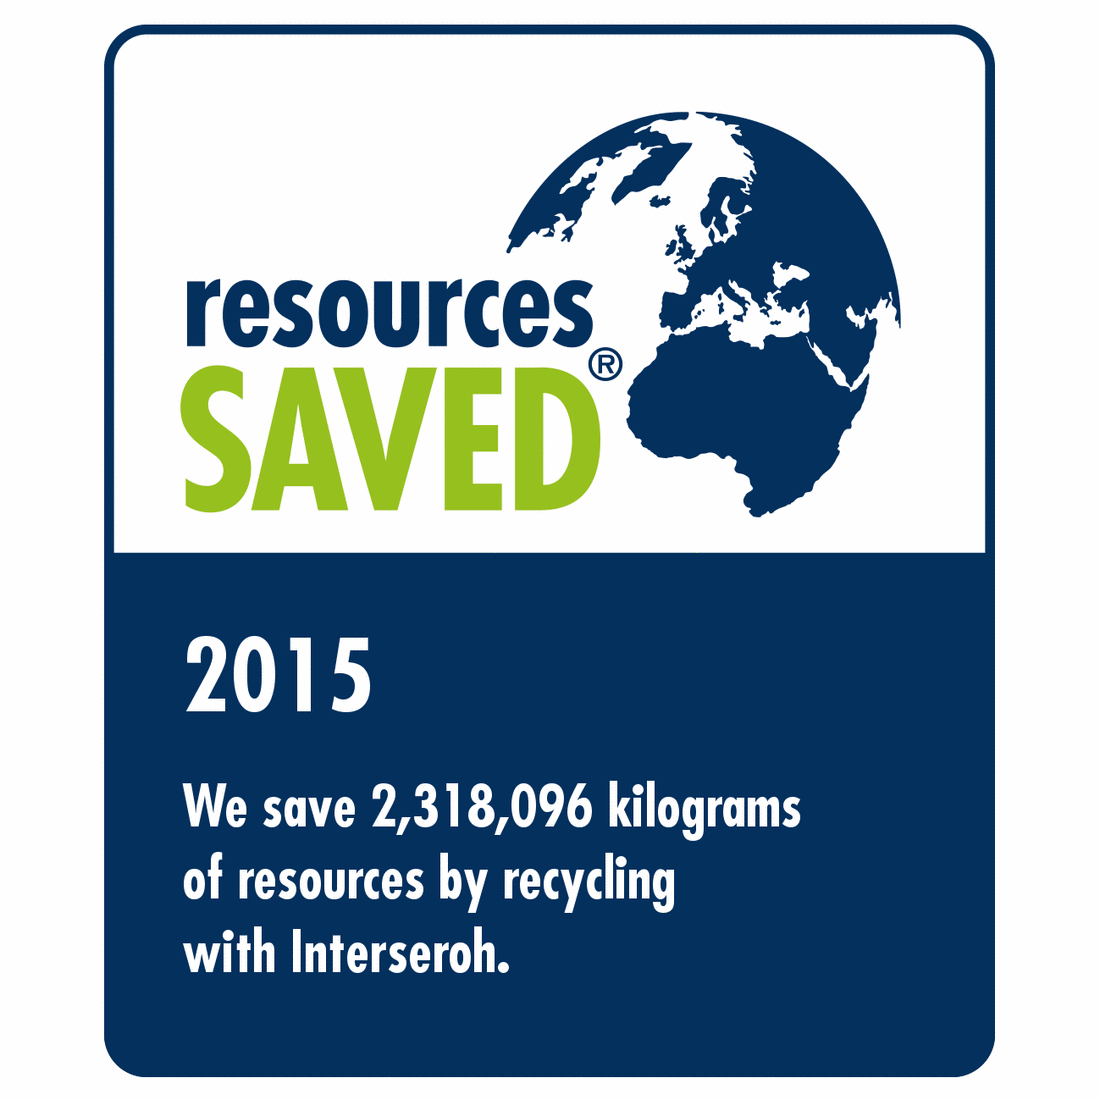 2015 - Saved resources by recycling